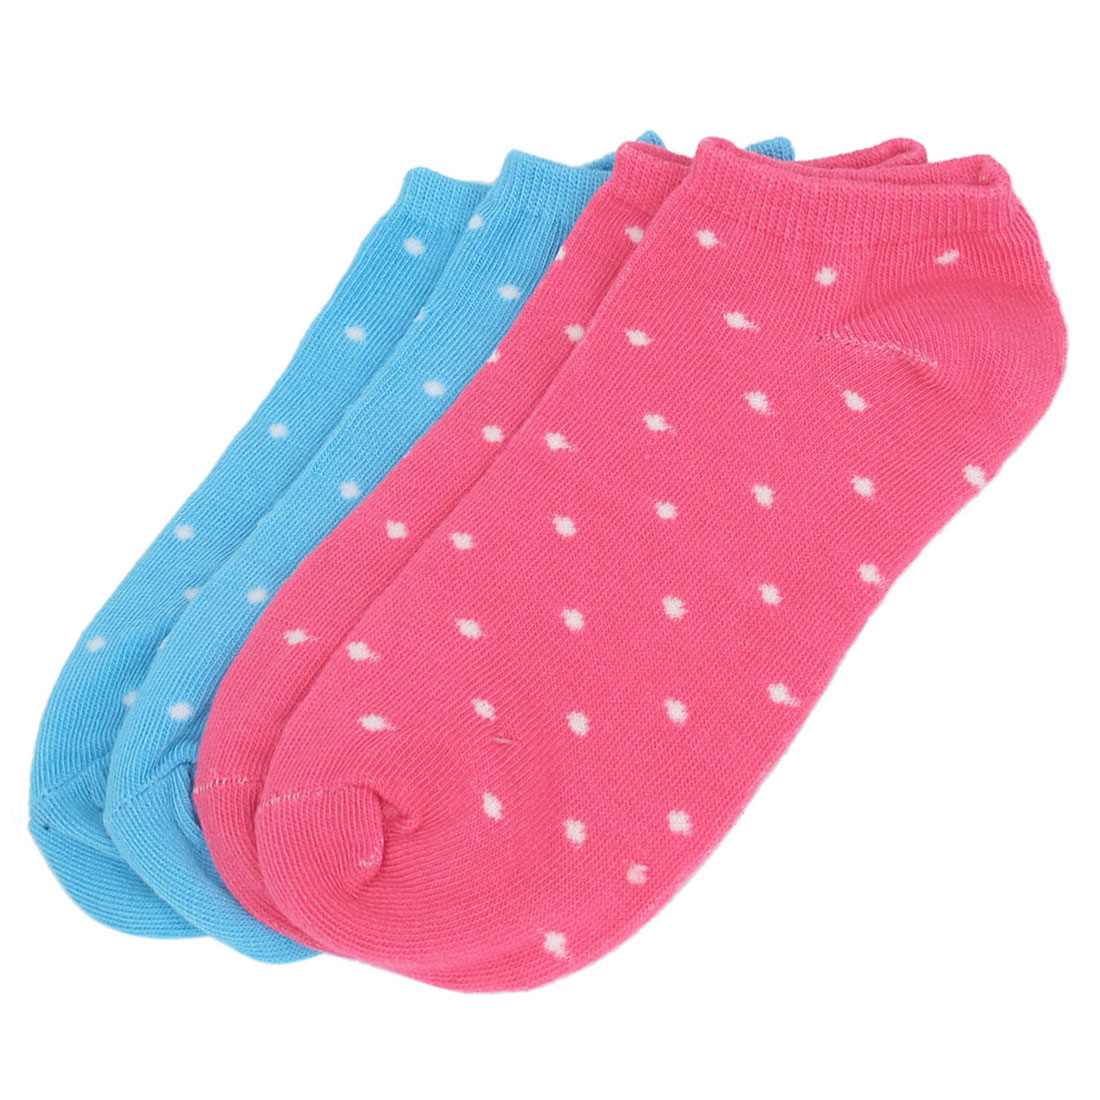 2 Pairs Blue Red Cotton Blends Elastic Fabric Stretch Cuff Dots Pattern Short Low Cut Ankle Mesh Socks for Ladies Women